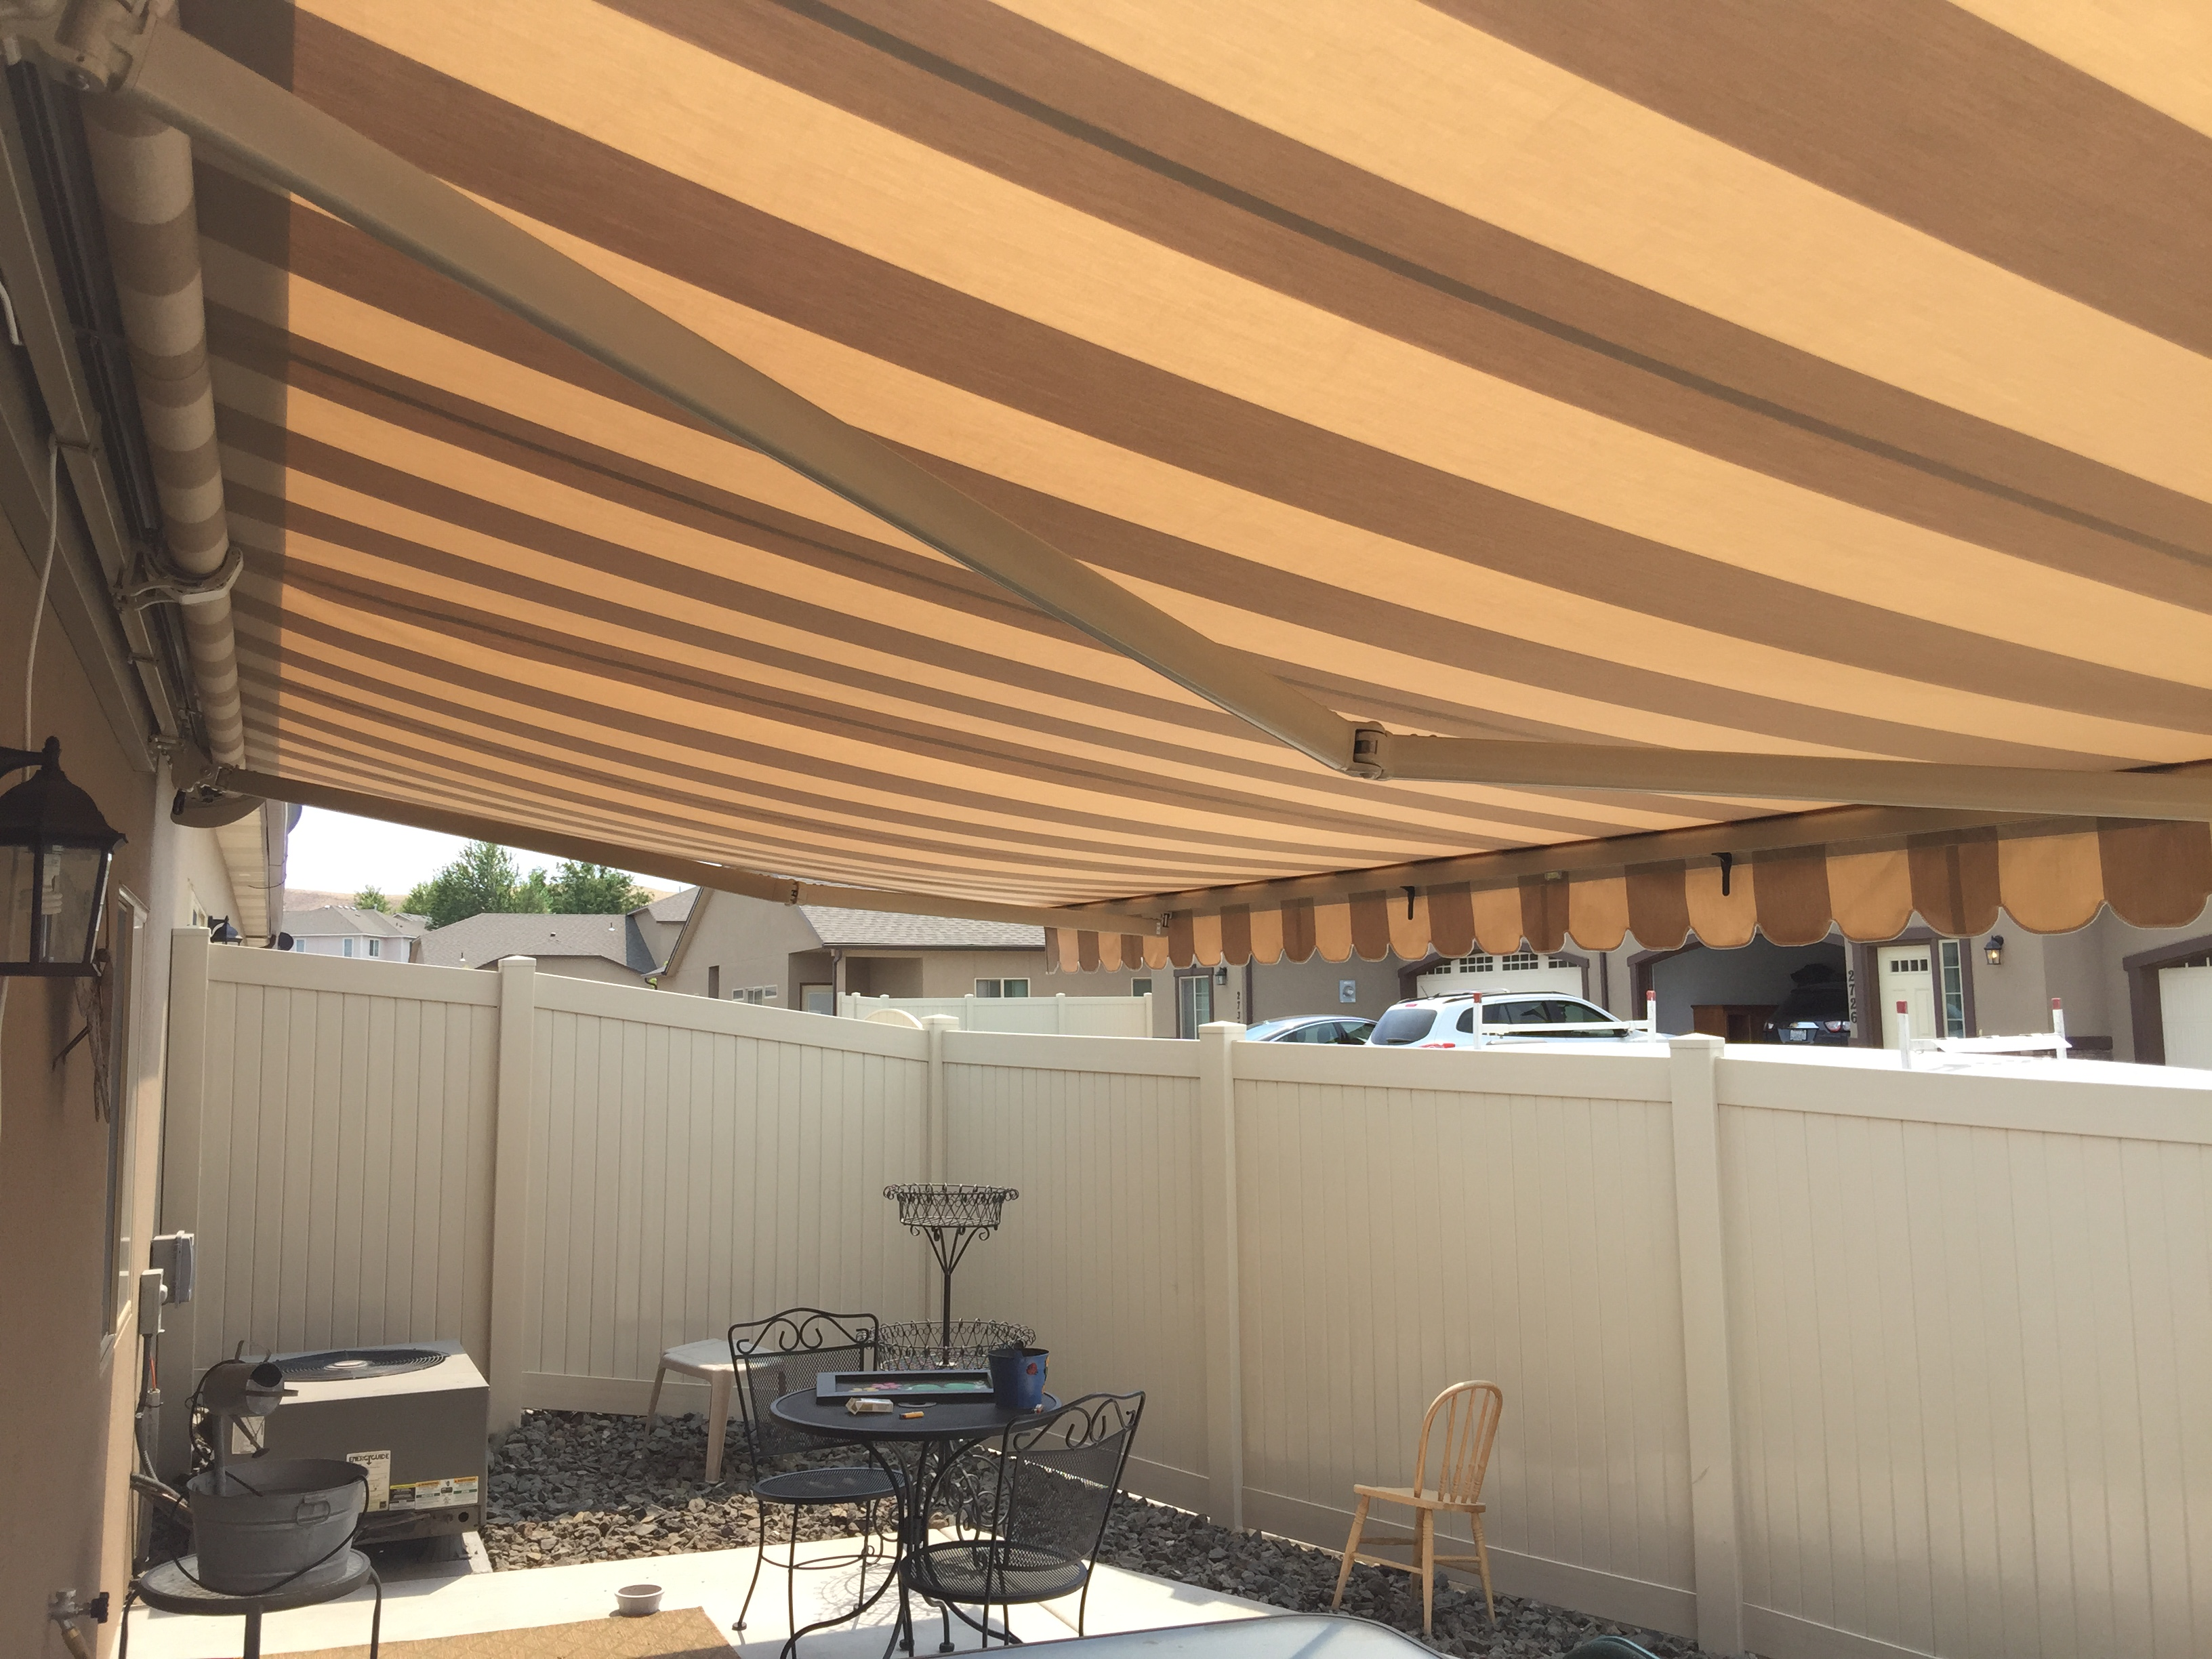 Captivating IMG_1051 Retractable Awning 1